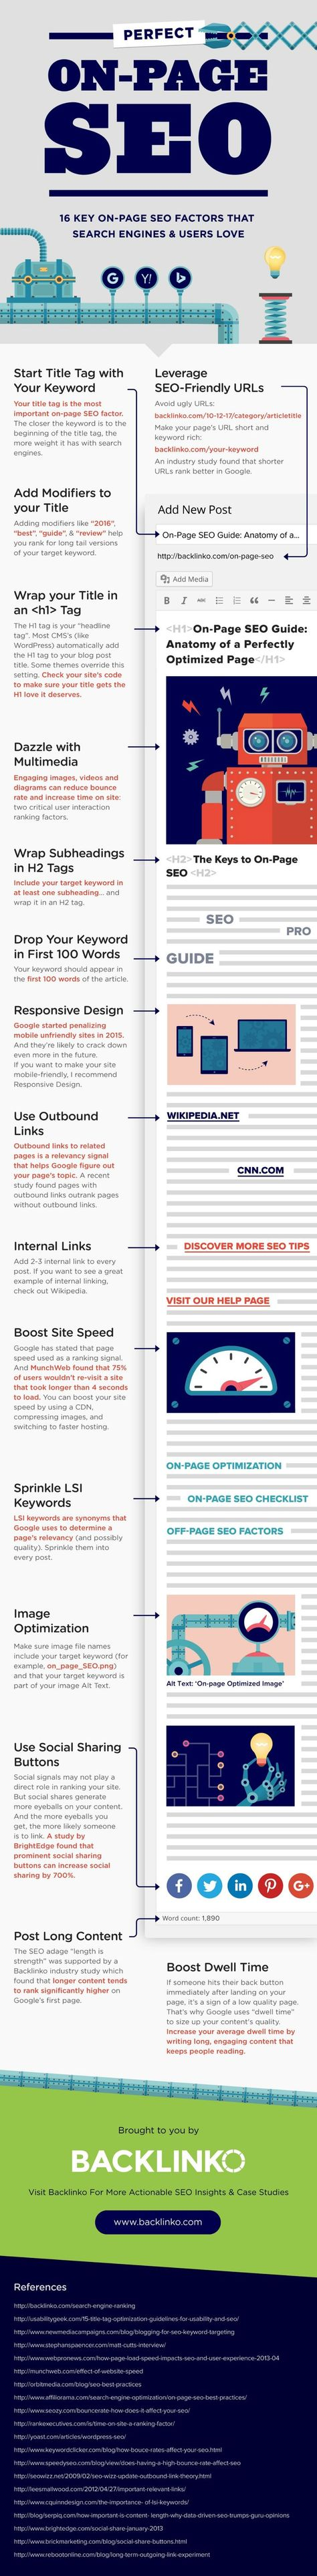 What is Search Engine Optimization? Best SEO Articles on BlogCharge